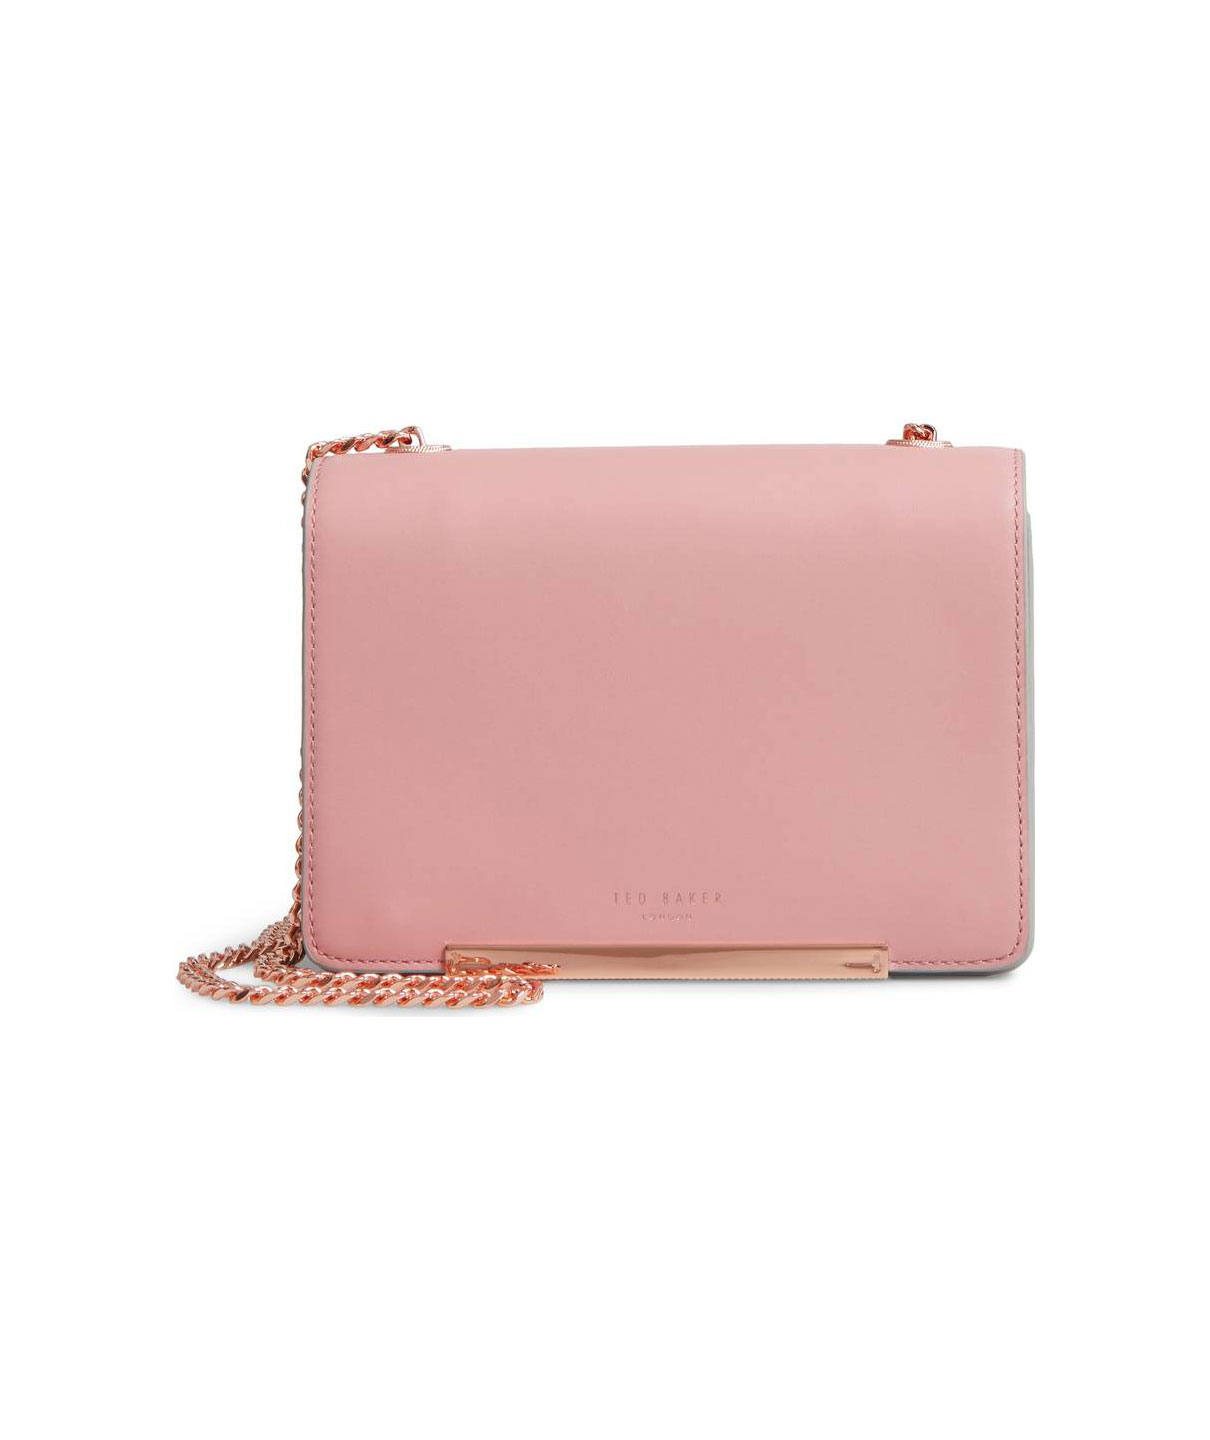 Ted Baker Earie Leather Crossbody Bag